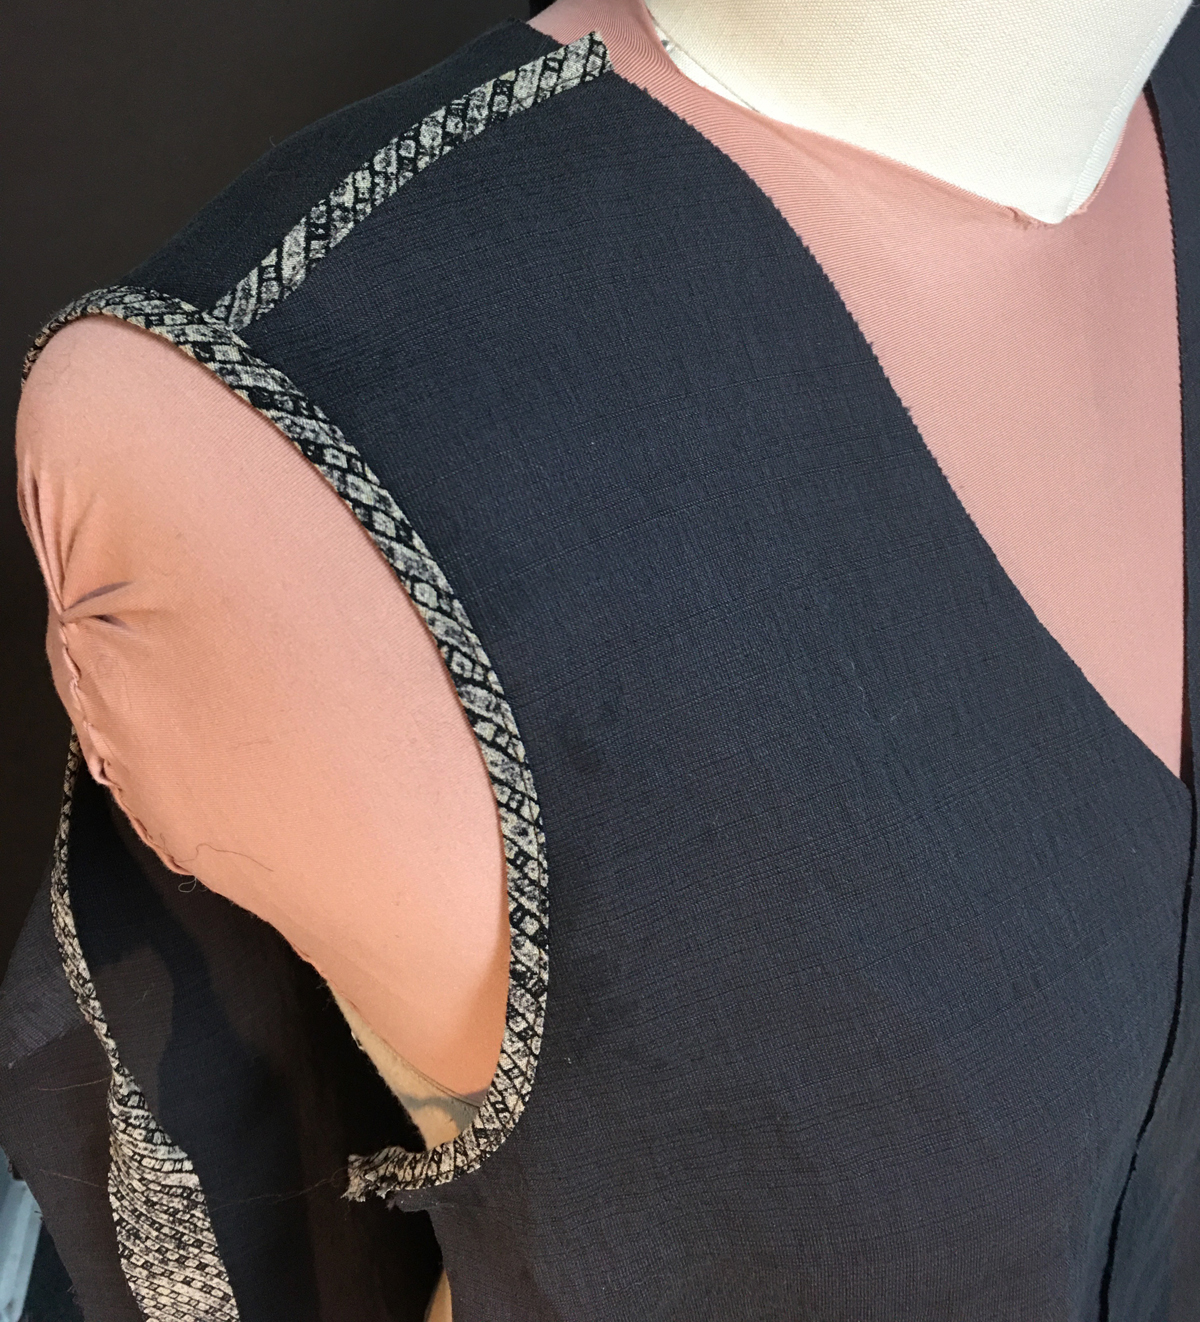 Closeup of bound shoulder and armhole edges of unfinished vest on dress form